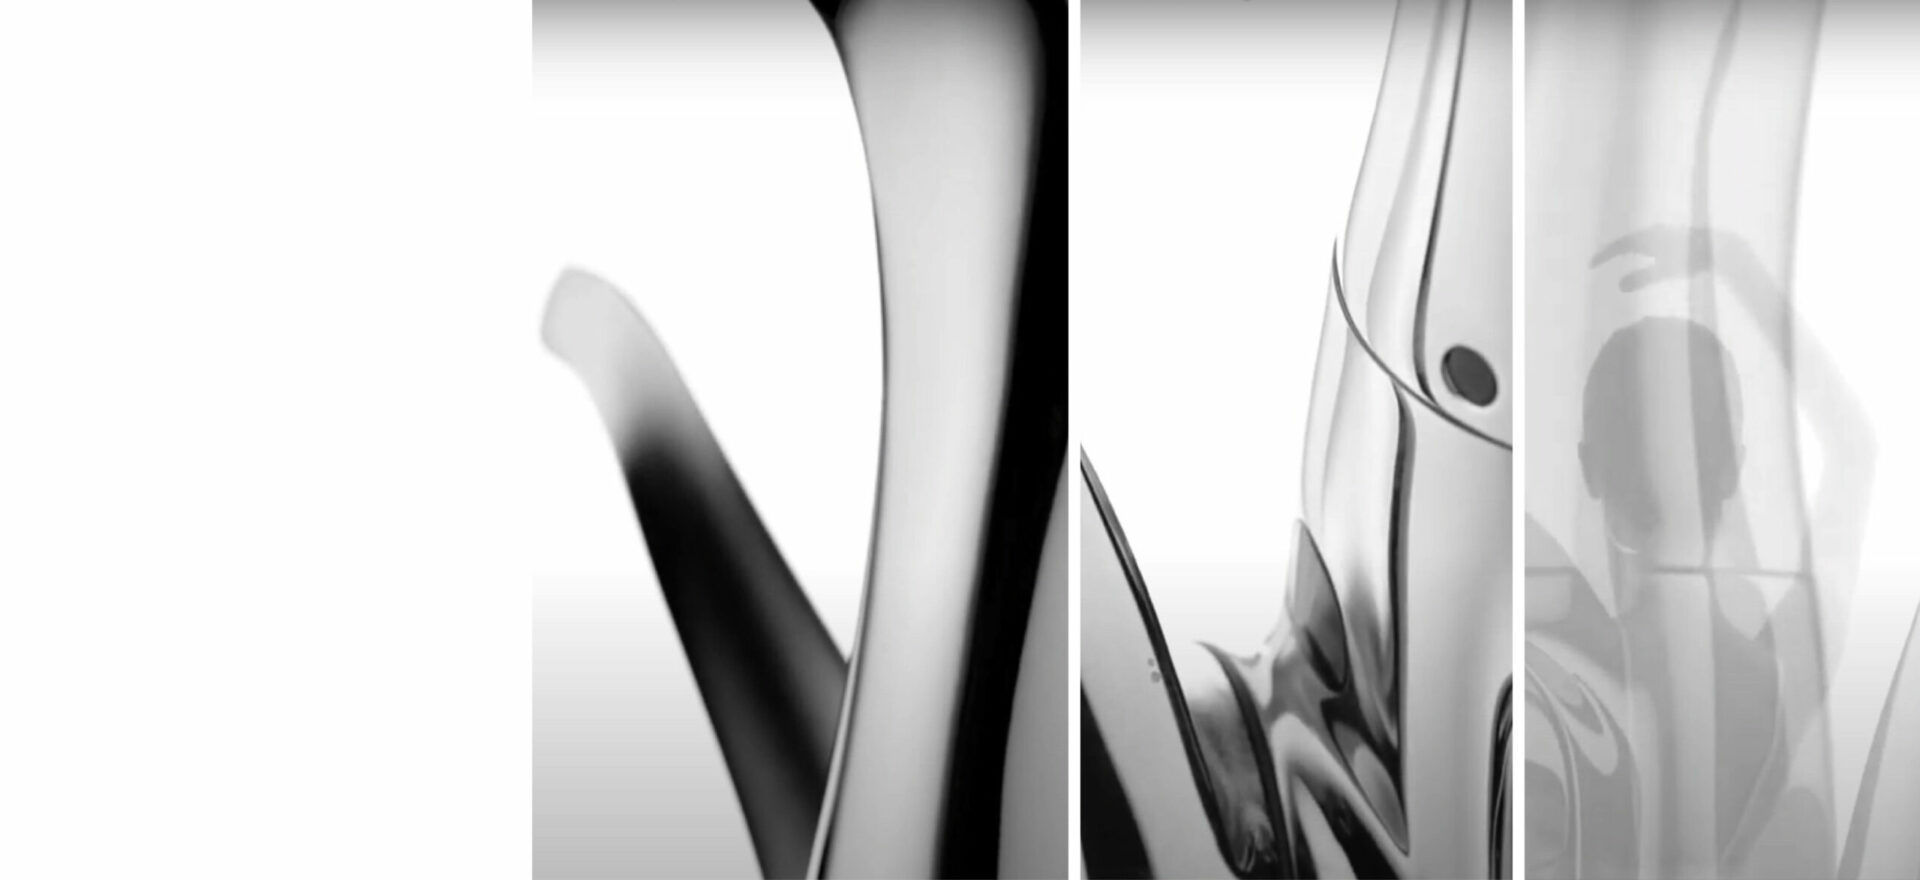 Art drawing of Swan kitchen faucet with black ink on white paper and the picture on a greyscale of a swan from the back. The design won the award of Good Design Award in 2017.